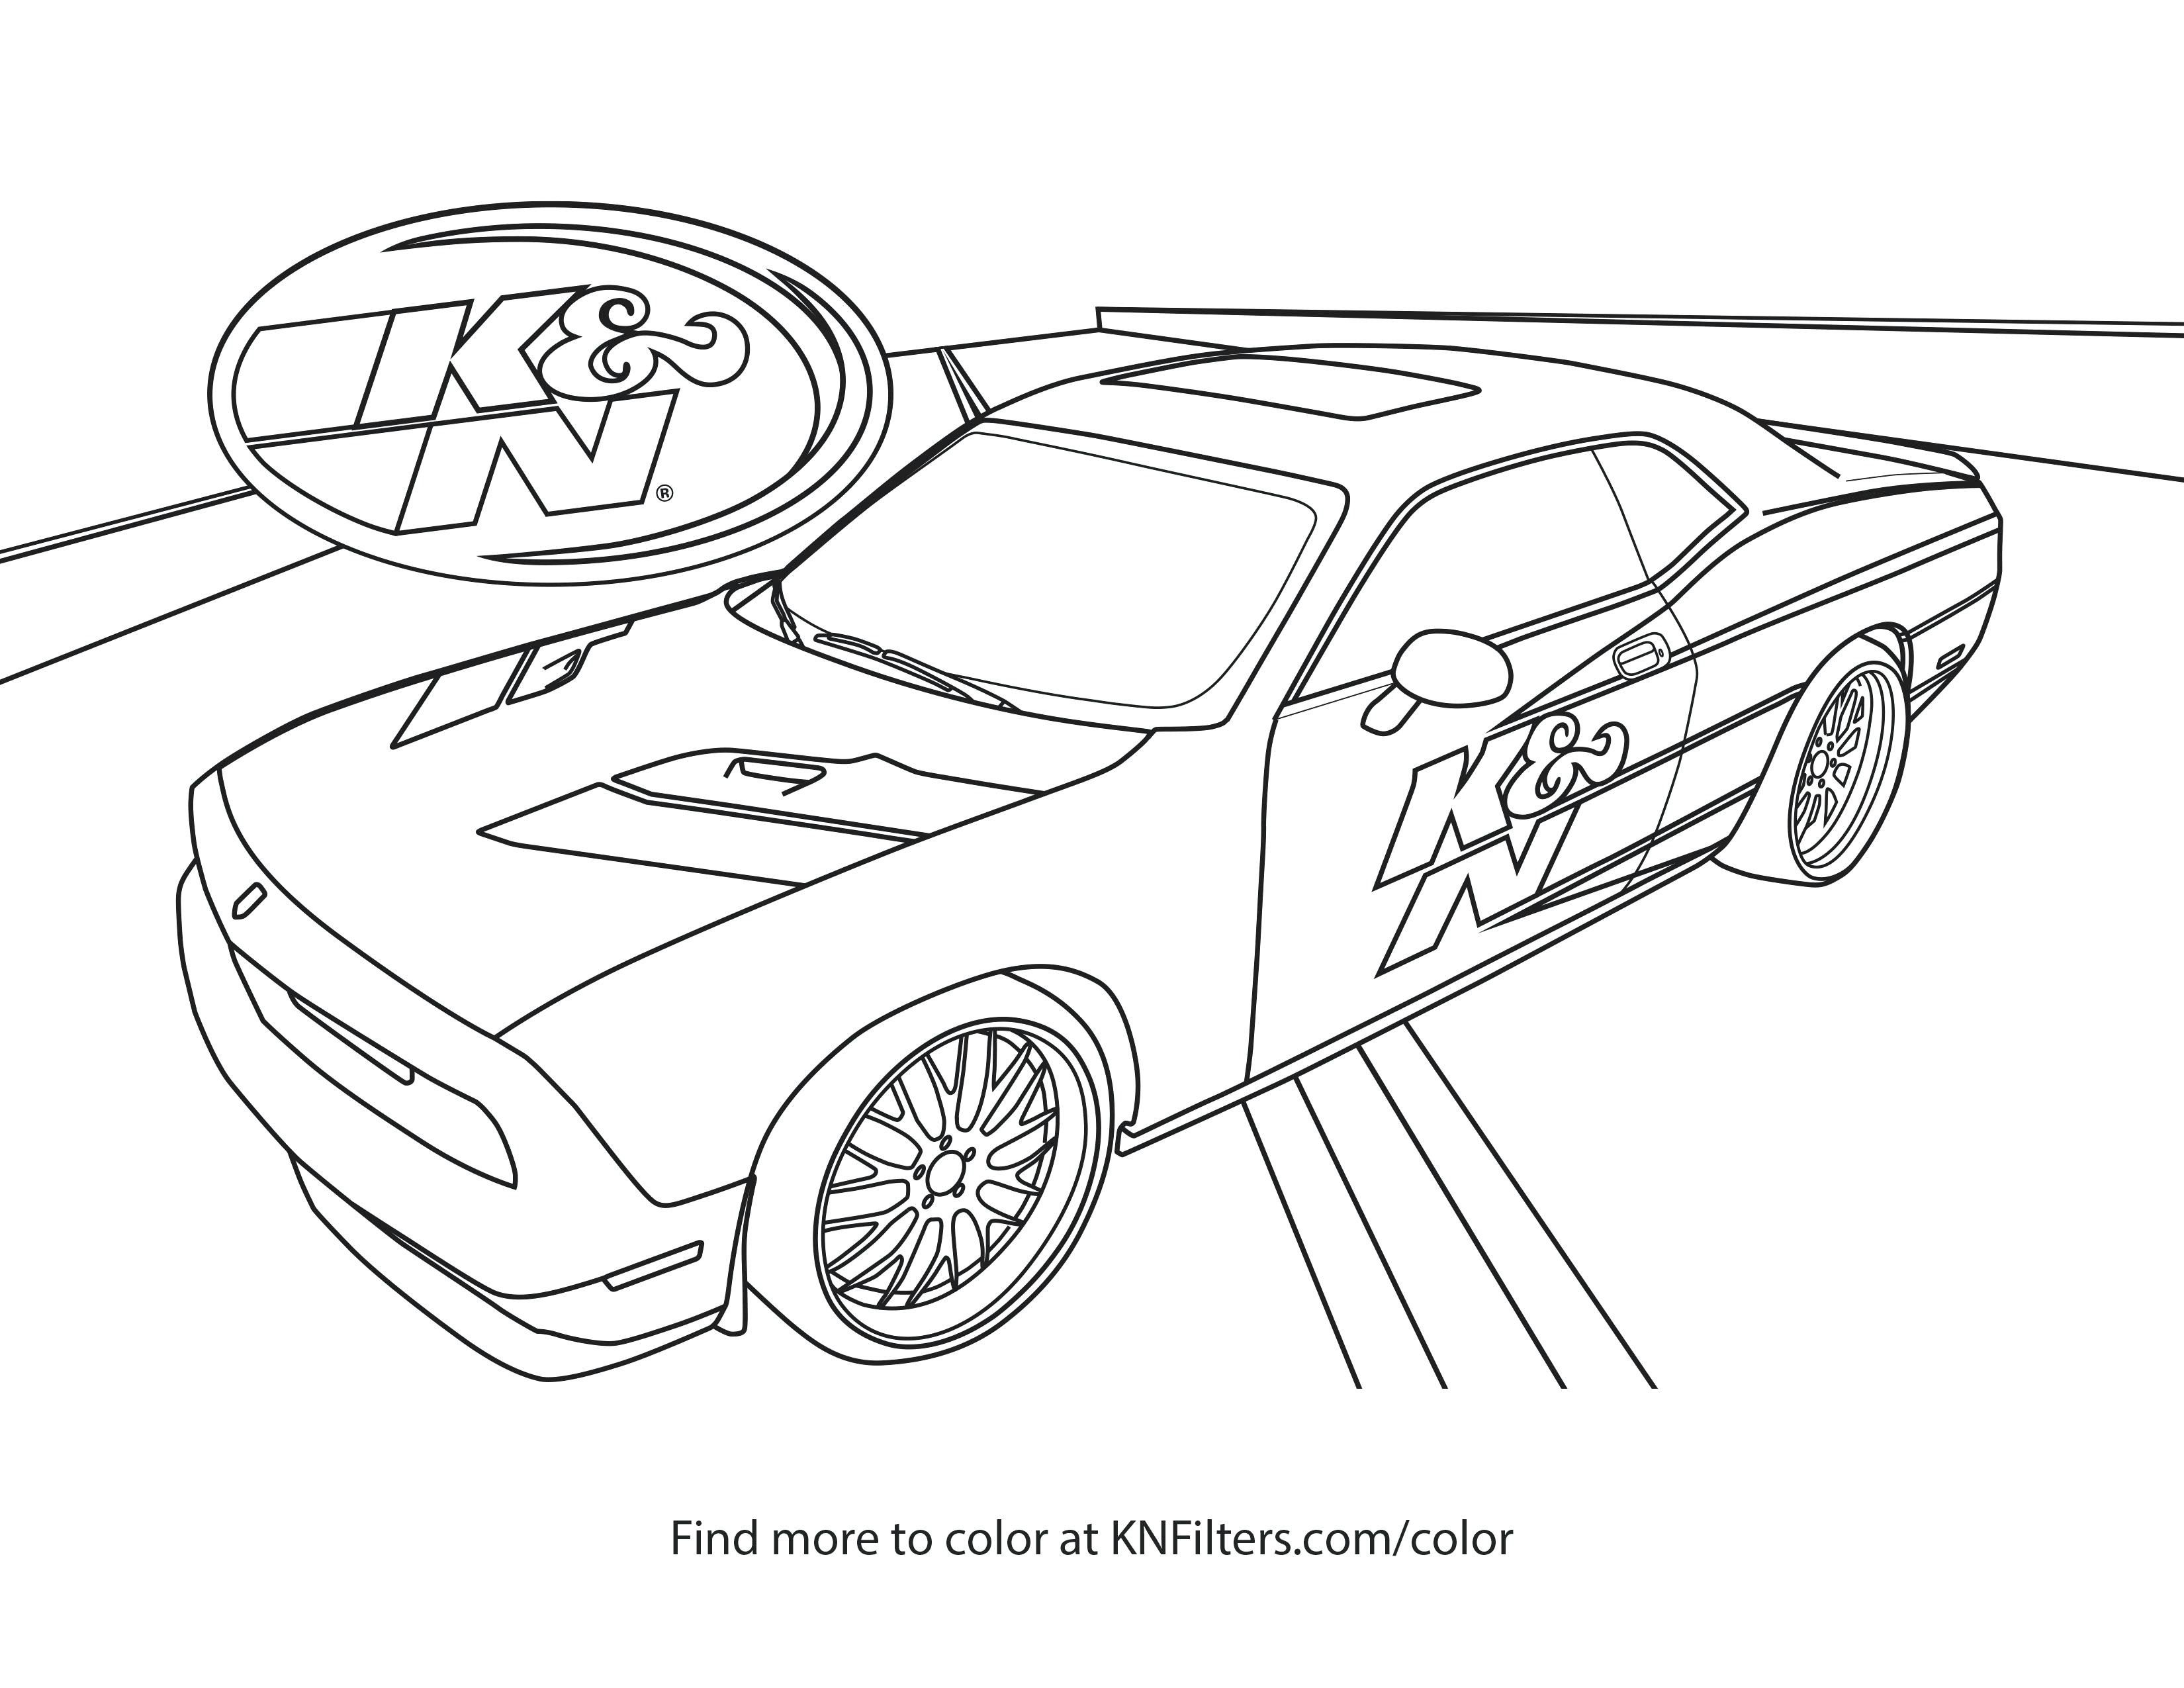 Challenger Drawing At GetDrawings.com